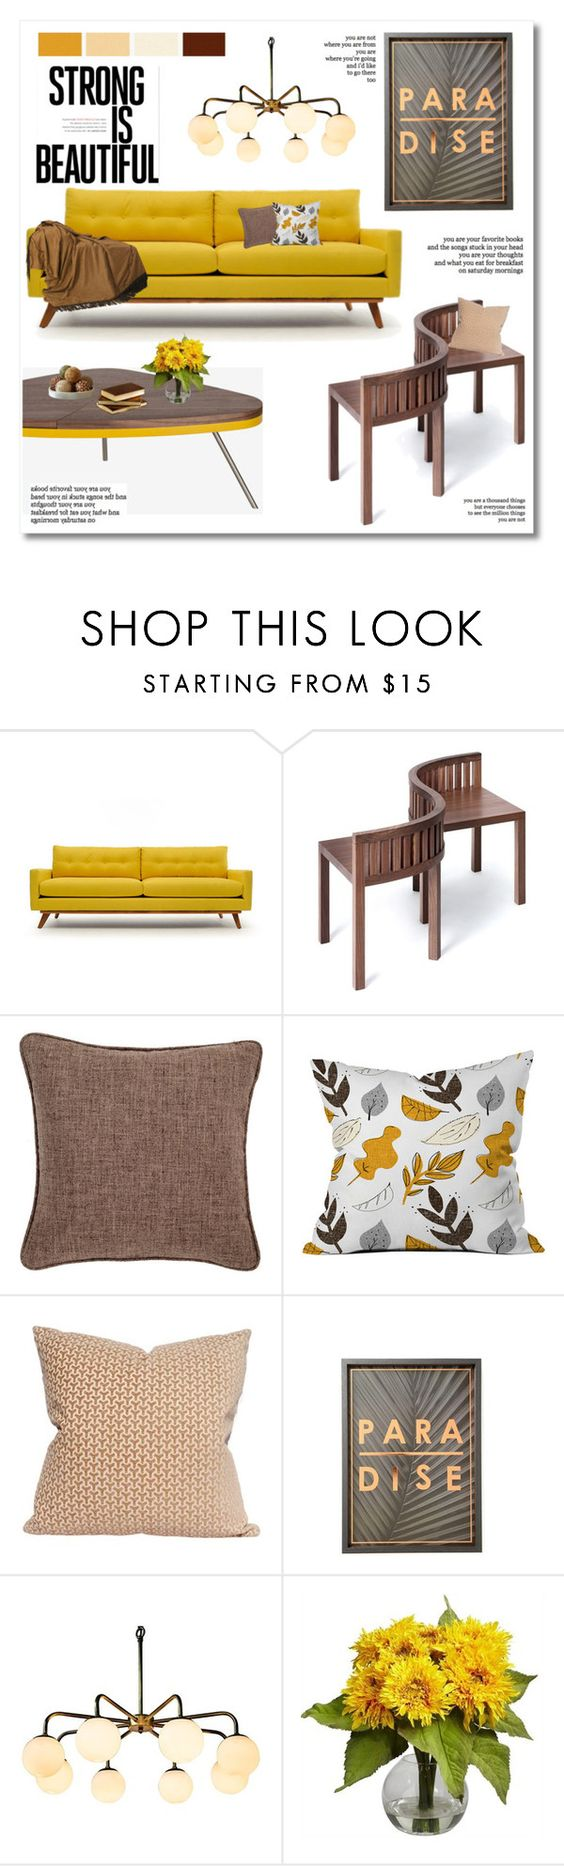 """the moment"" by limass ❤ liked on Polyvore featuring interior, interiors, interior design, home, home decor, interior decorating, Thrive, Fresh American, Dot & Bo and Nearly Natural"